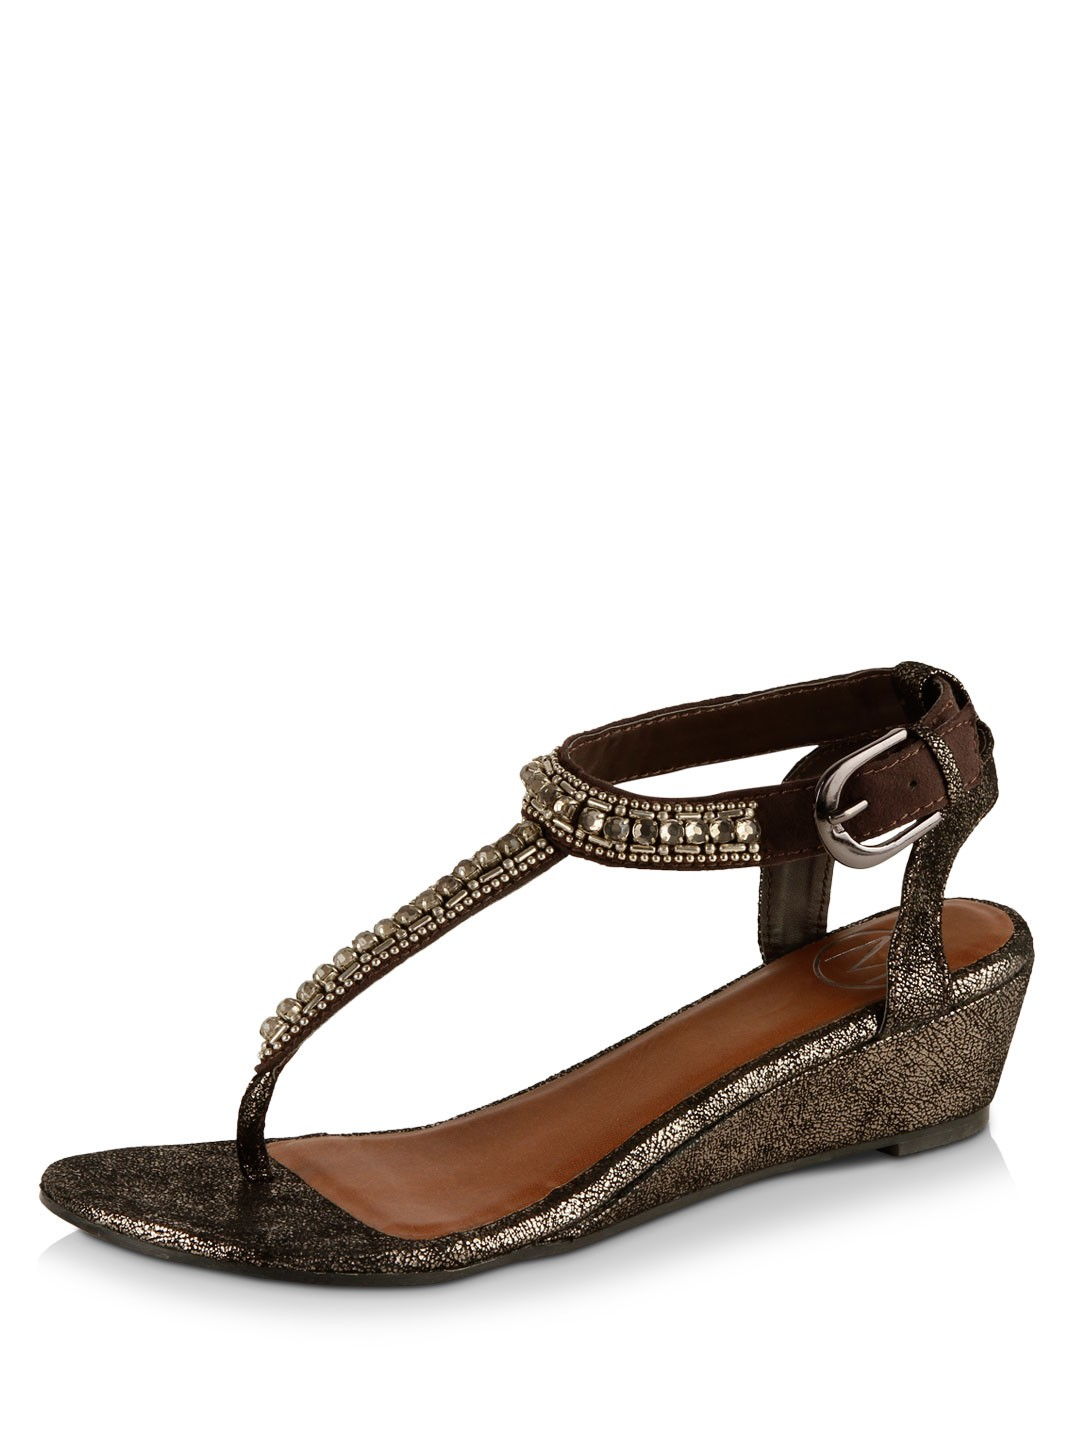 How To Repair Melissa Shoes